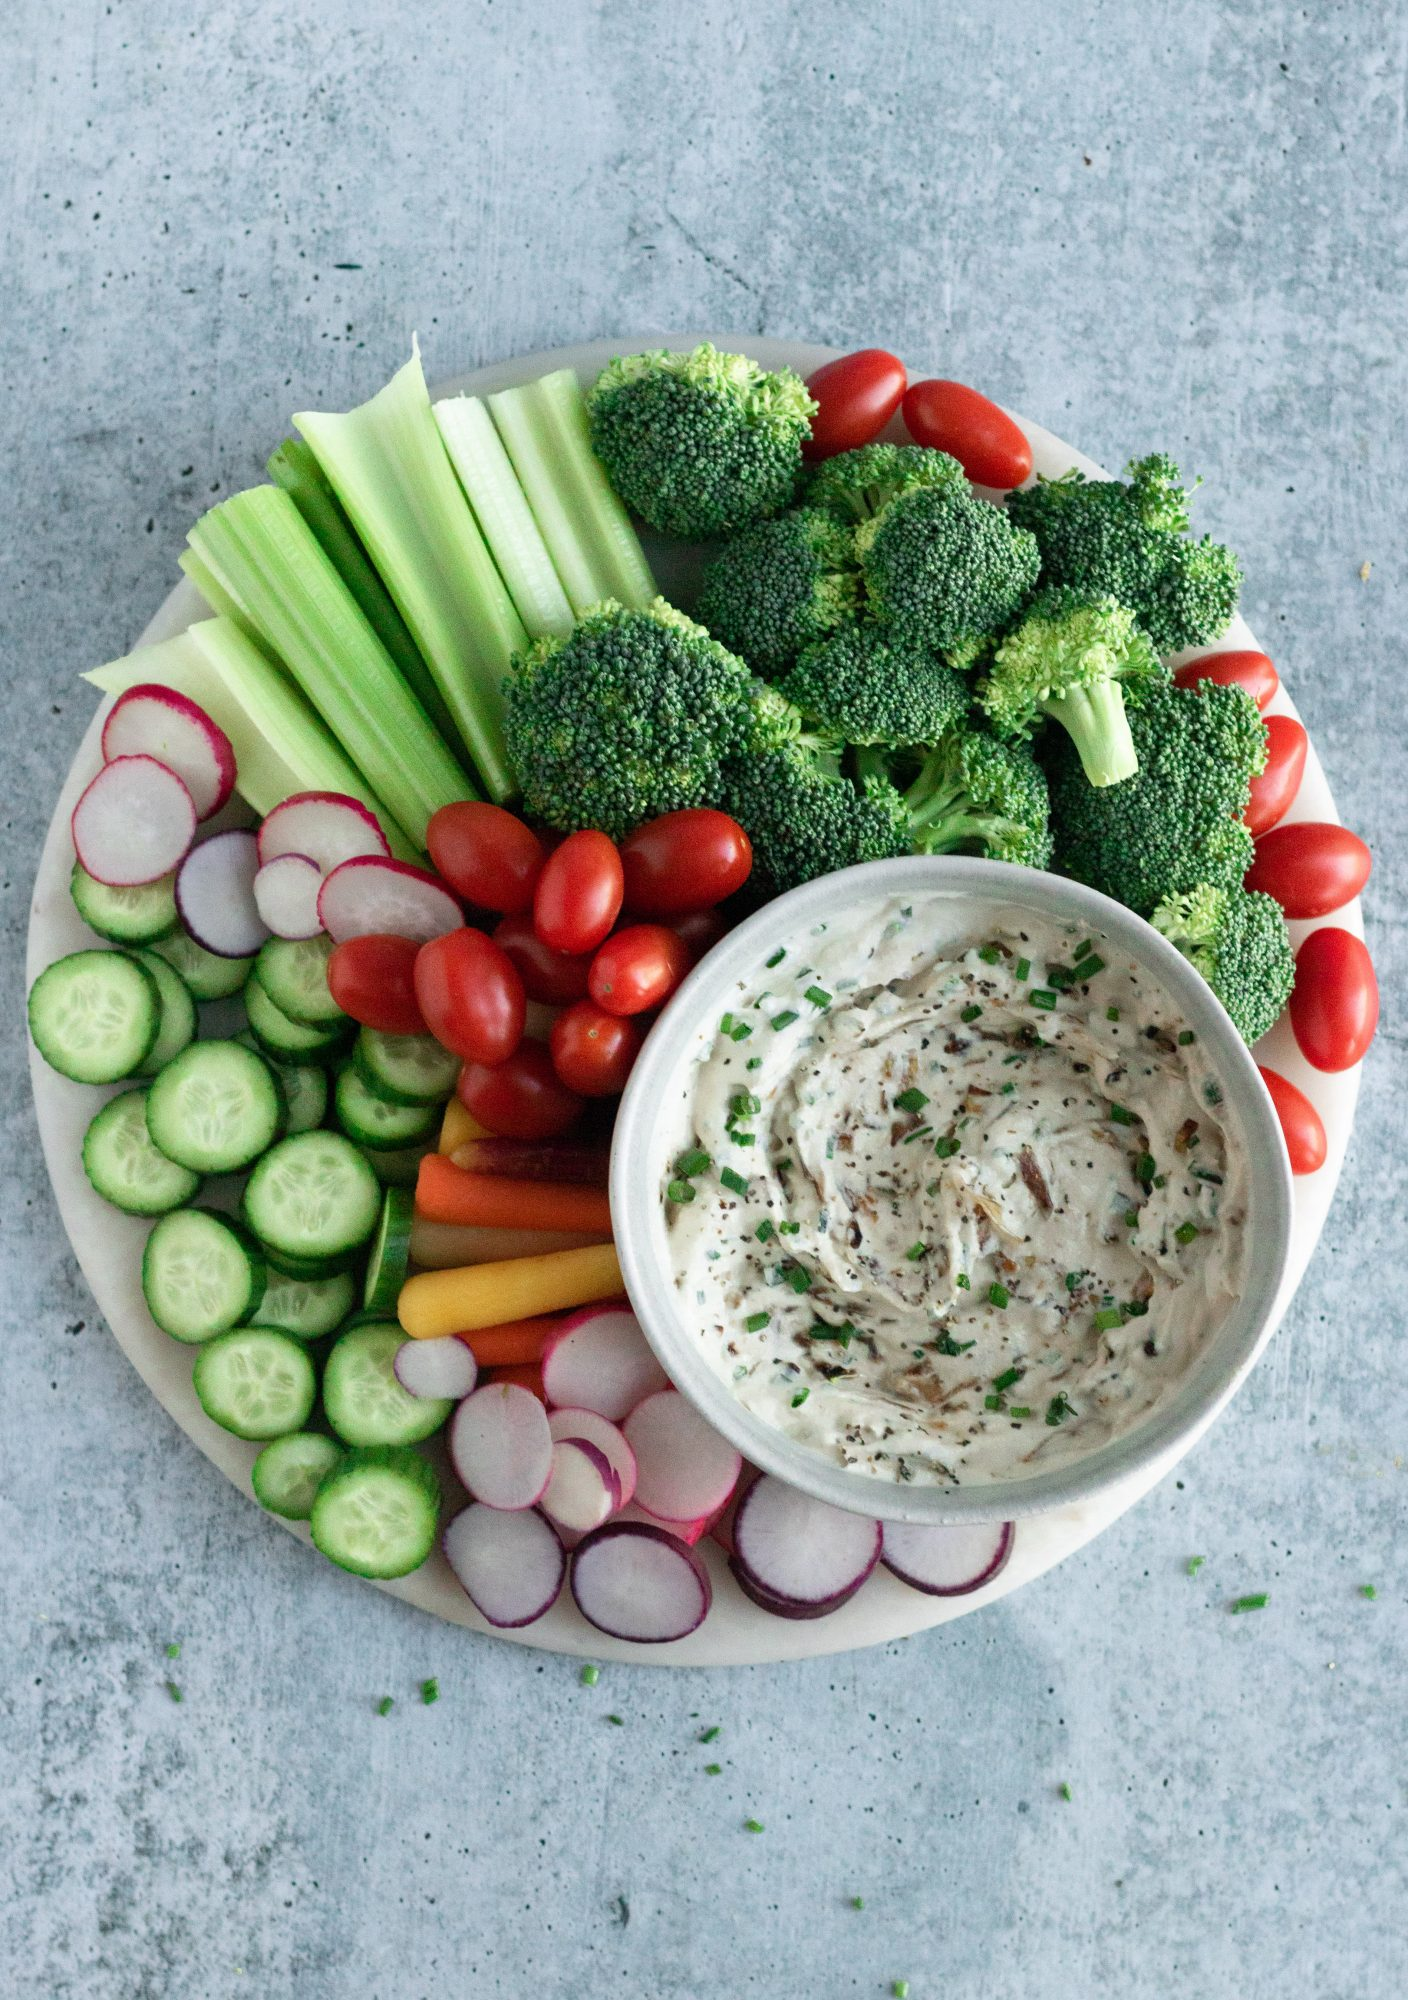 Vegan French Onion Dip with Raw Veggies